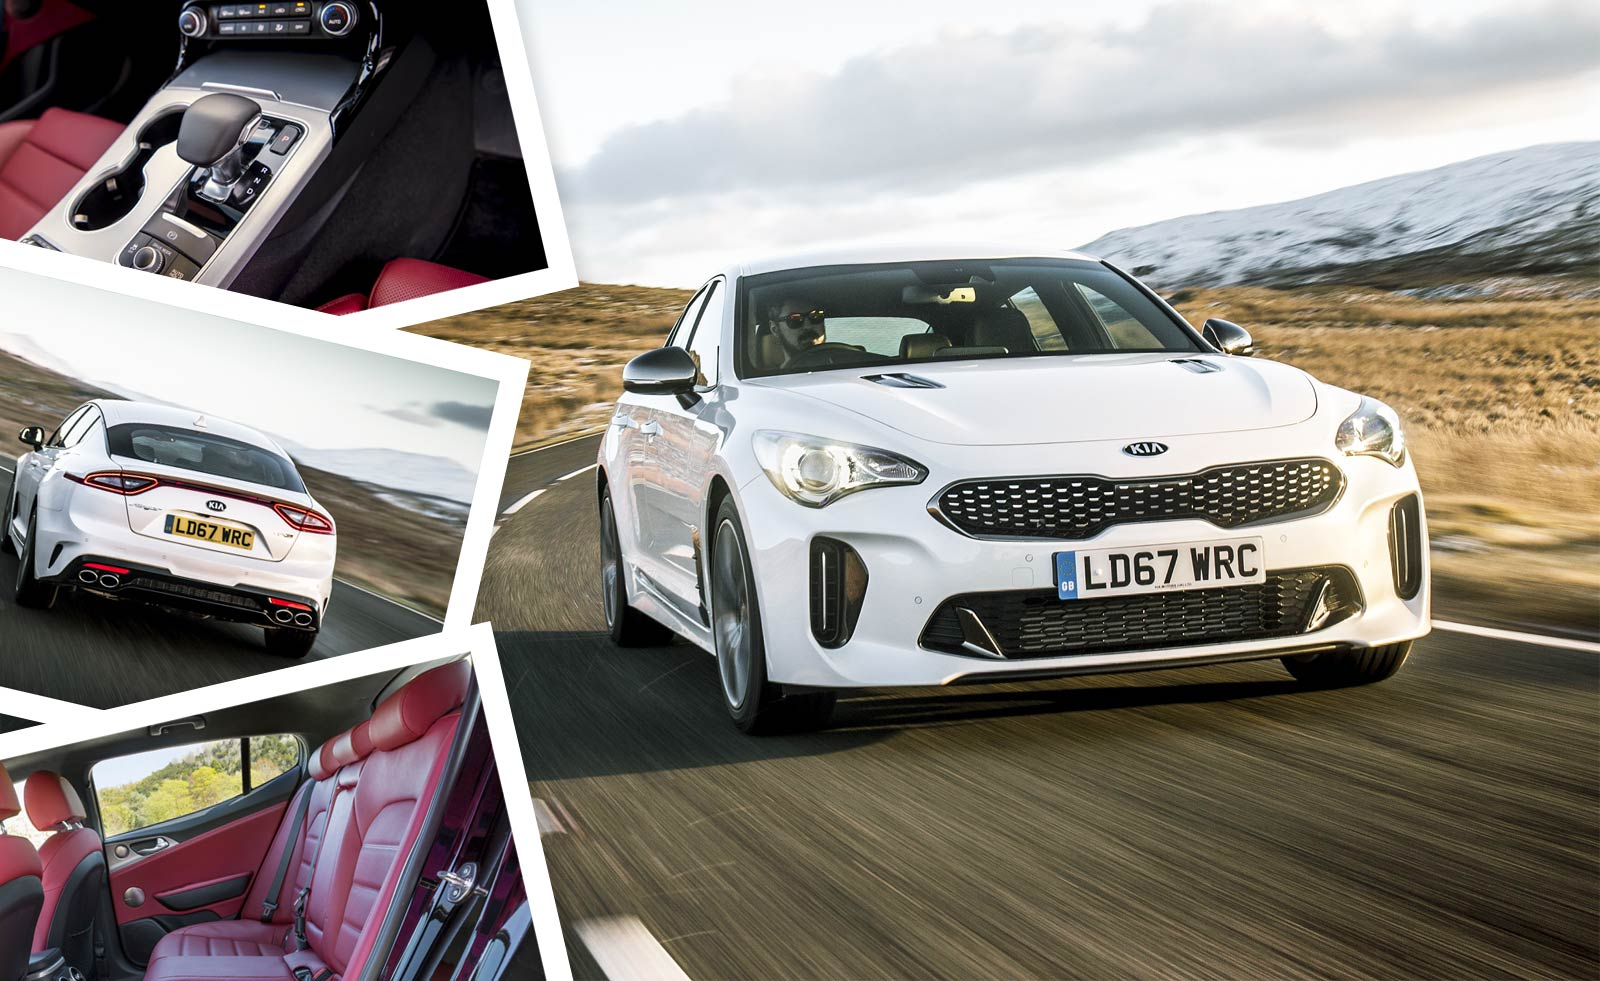 Road Test and Review of The KIA Stinger 2.0 T-GDi 'GT-Line' S